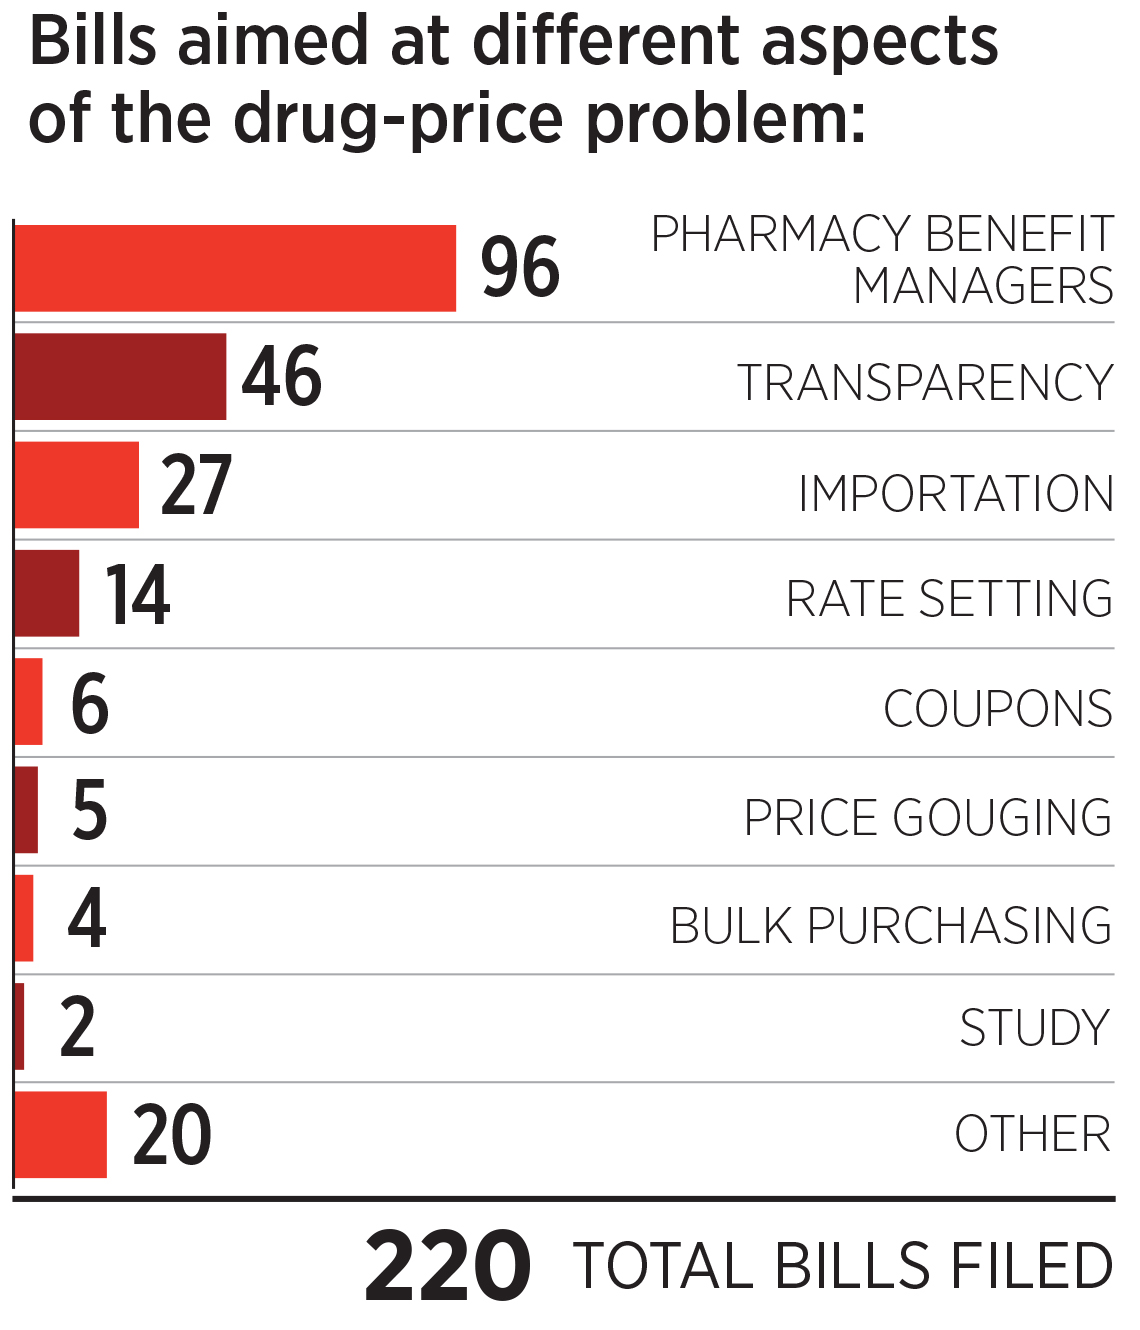 Bills aimed at different aspects of the drug-price problem: